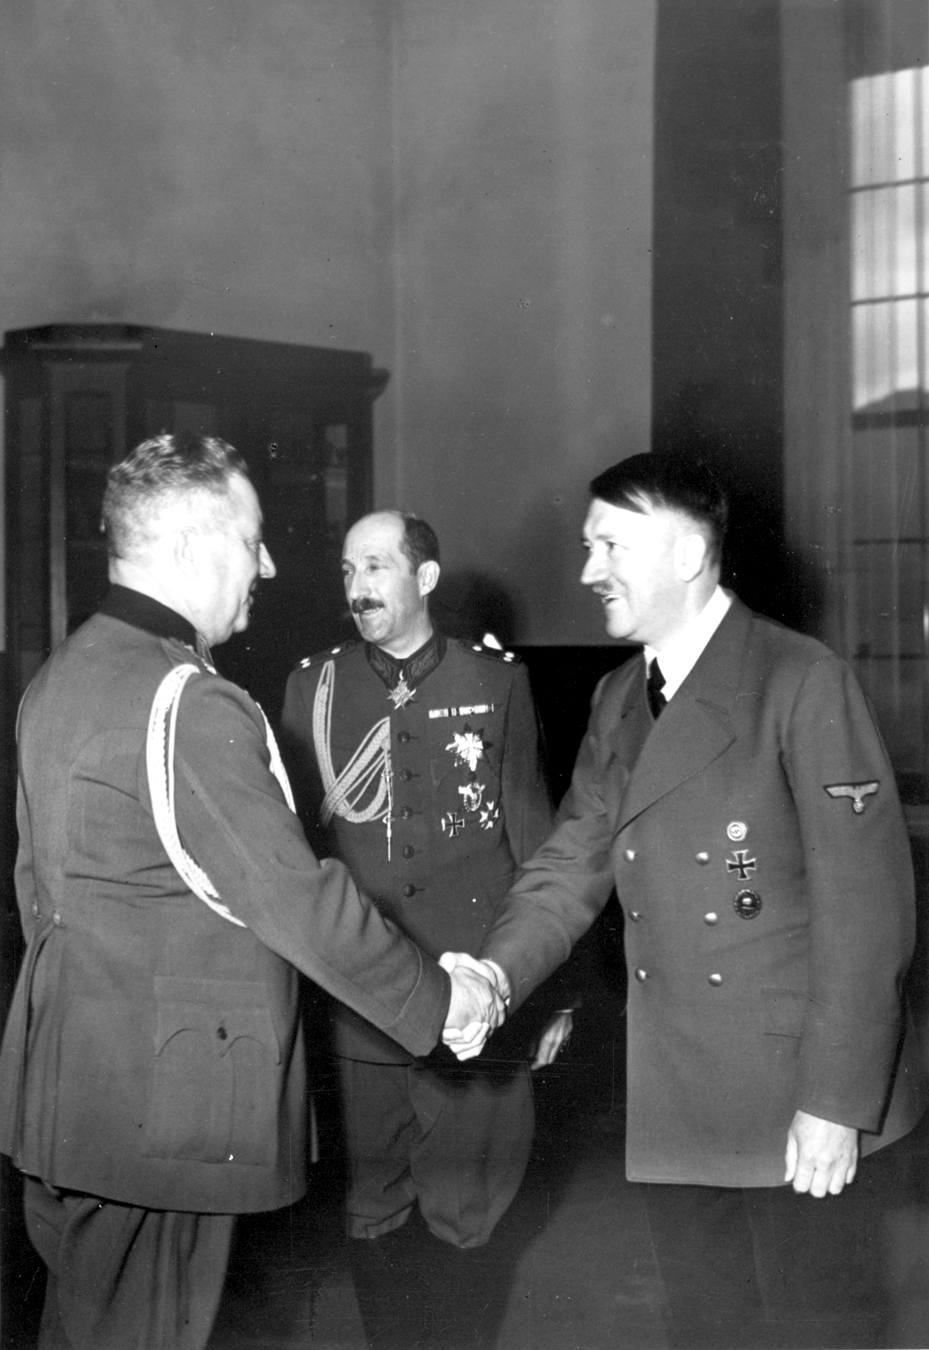 Adolf Hitler with Zar Boris III in the Berghof, from Eva Braun's albums